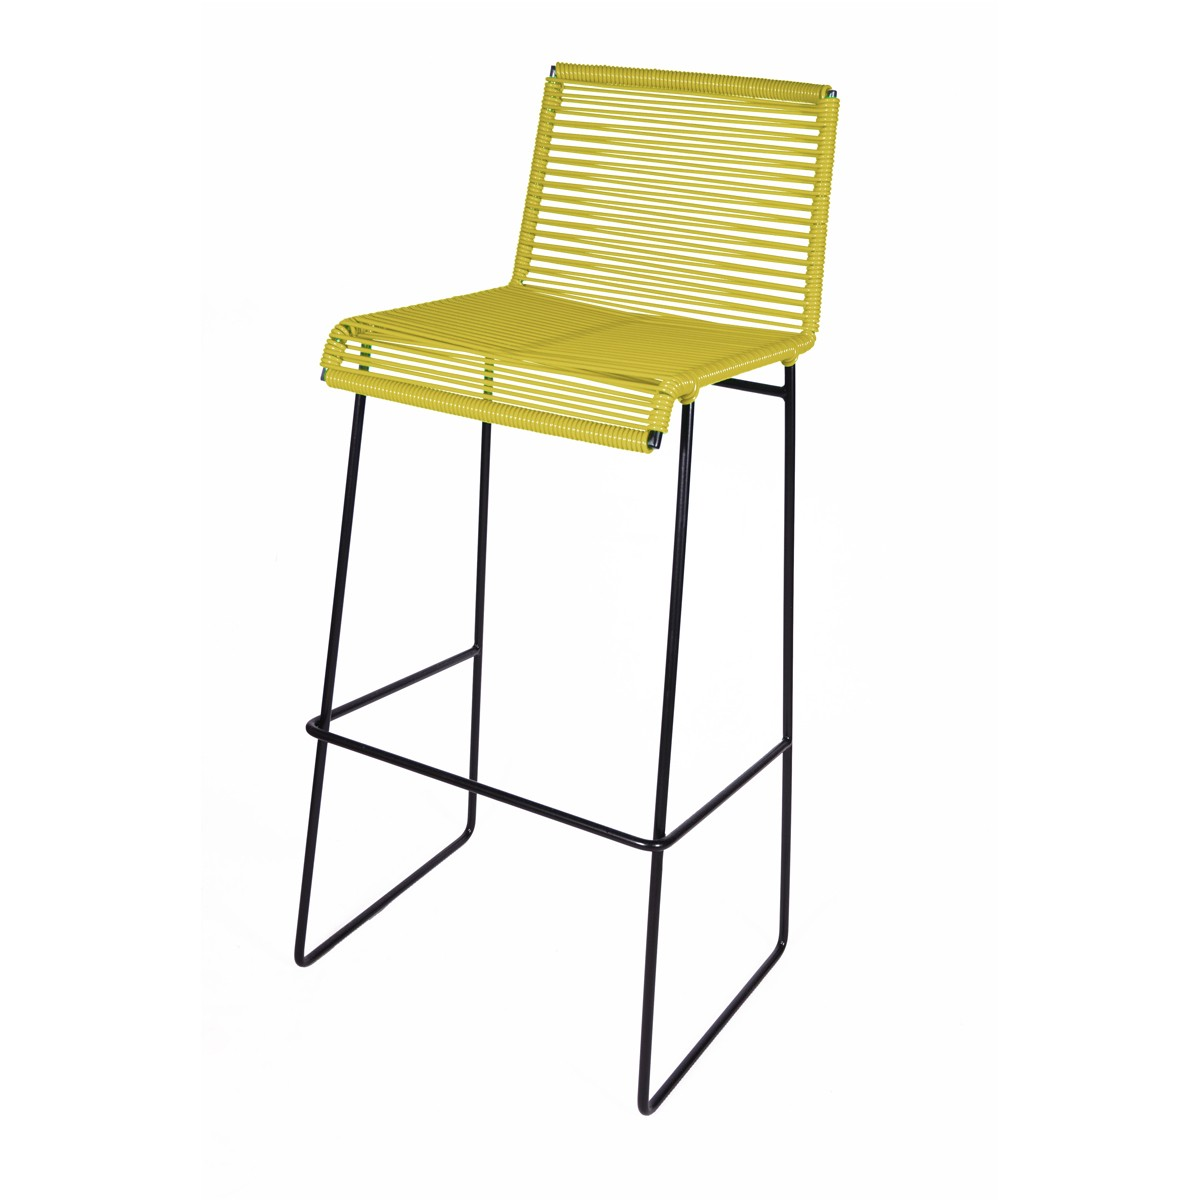 tabouret de bar gran cenote de boqa jaune moutarde. Black Bedroom Furniture Sets. Home Design Ideas